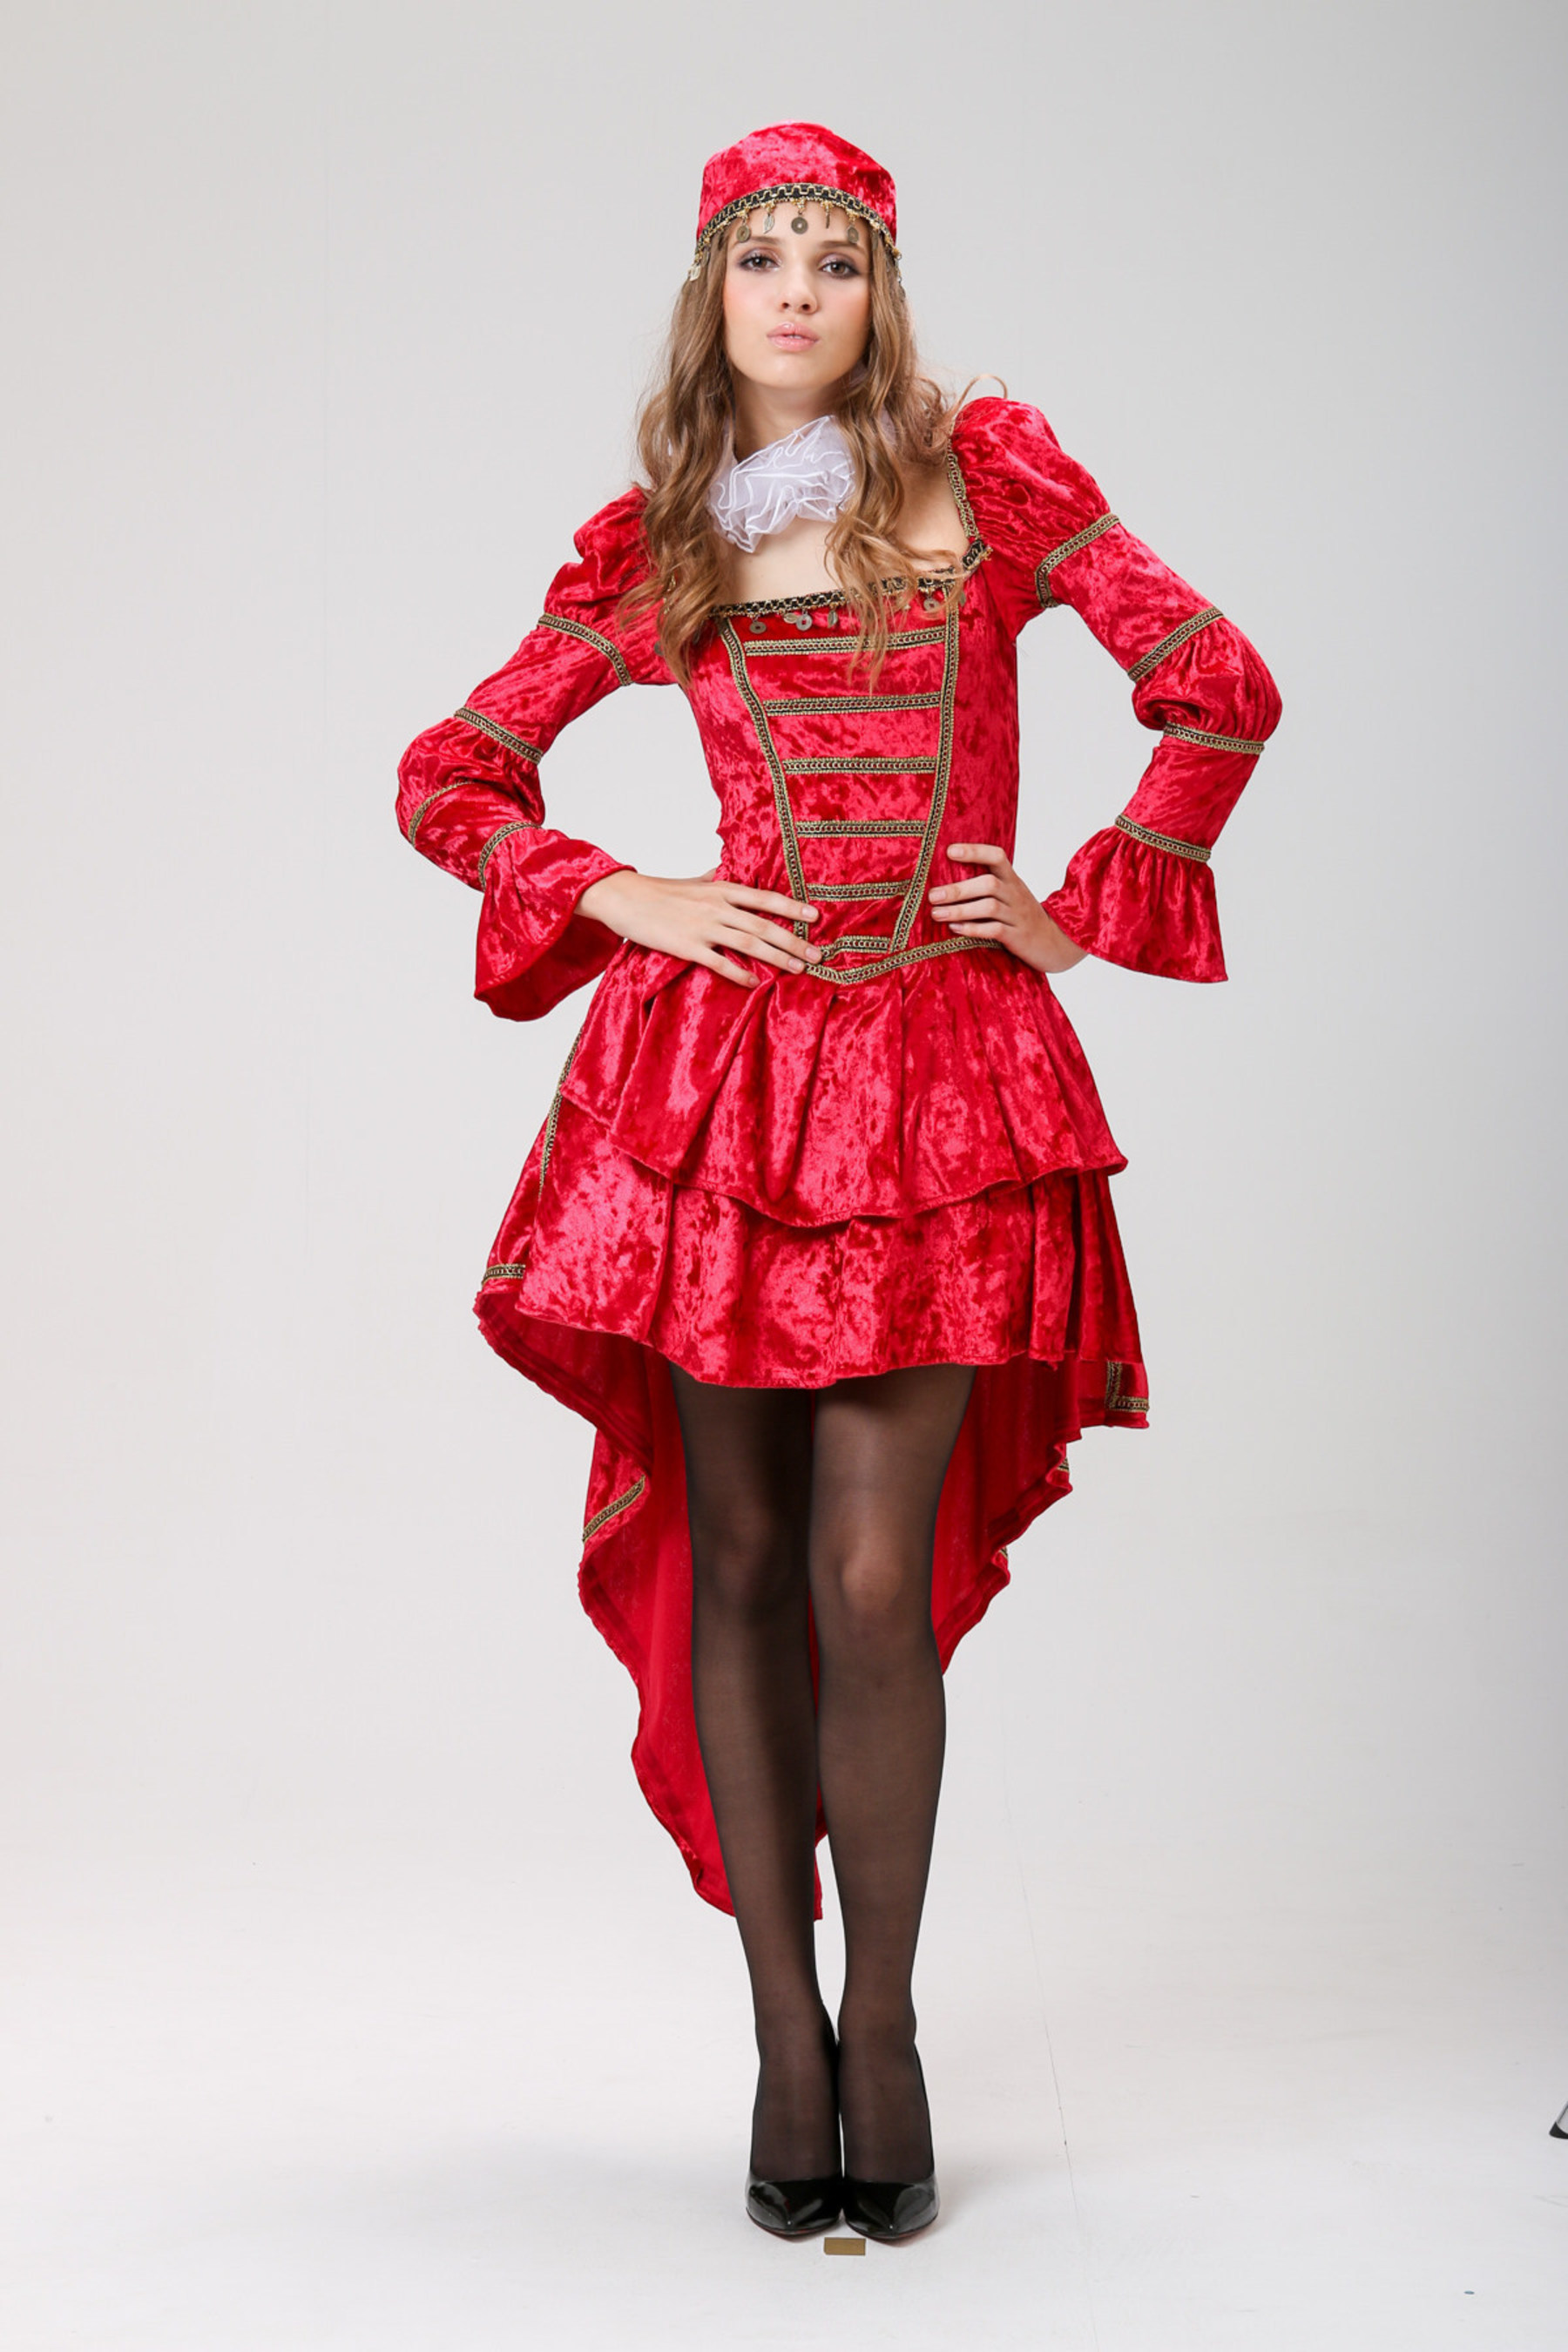 The Standard Is Set by HGM Costume for Halloween & Party Costumes